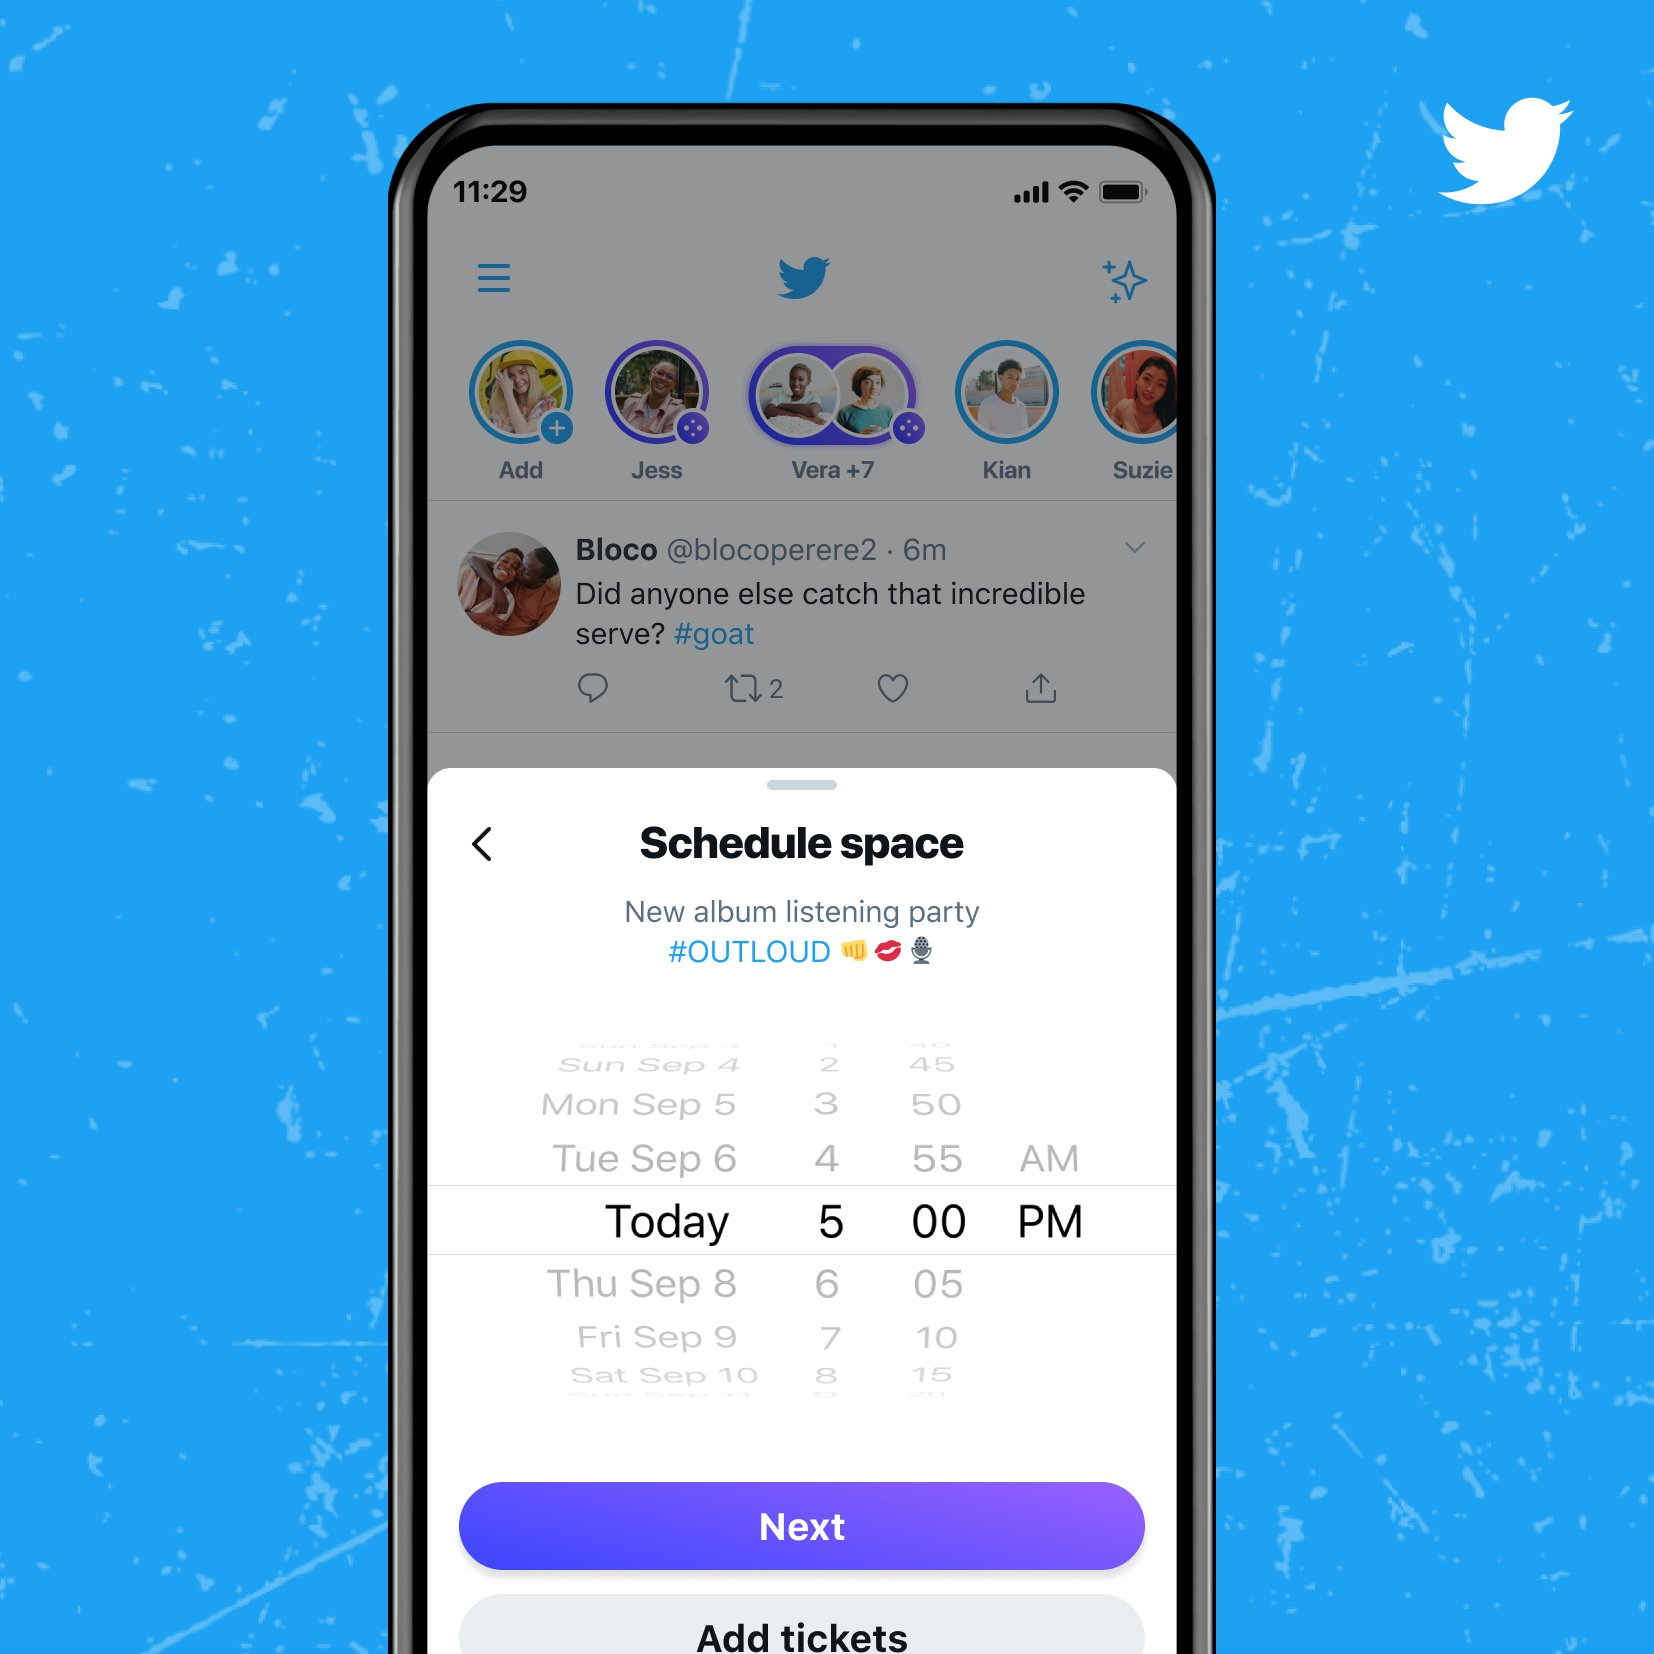 """an image mockup of a Twitter account scheduling a """"new album listening party #OUTLOUD"""" with the ability to set the time."""